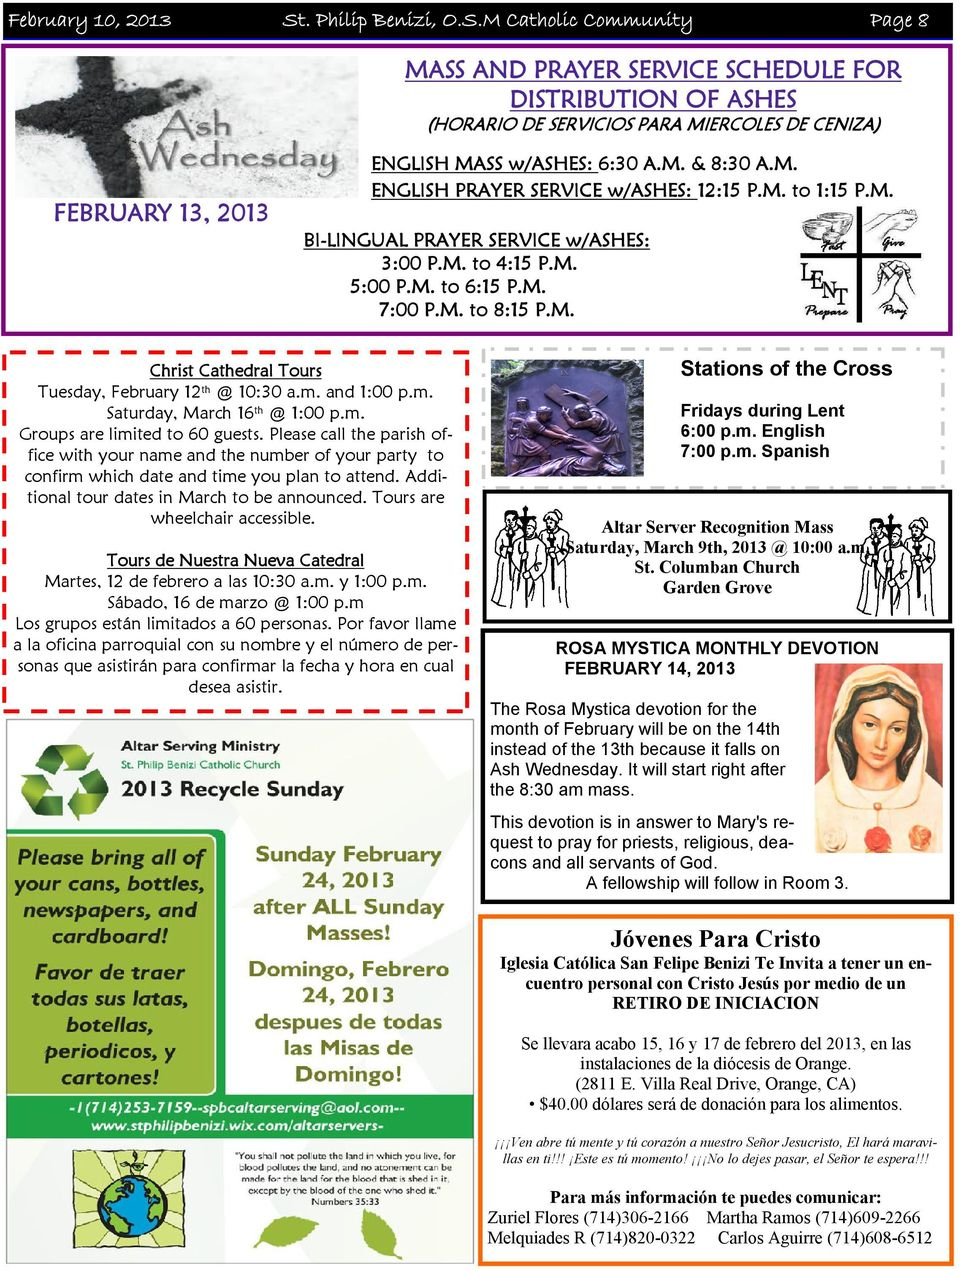 M Catholic Community Page 8 MASS AND PRAYER SERVICE SCHEDULE FOR DISTRIBUTION OF ASHES (HORARIO DE SERVICIOS PARA MIERCOLES DE CENIZA) FEBRUARY 13, 2013 ENGLISH MASS w/ashes: 6:30 A.M. & 8:30 A.M. ENGLISH PRAYER SERVICE w/ashes: 12:15 P.